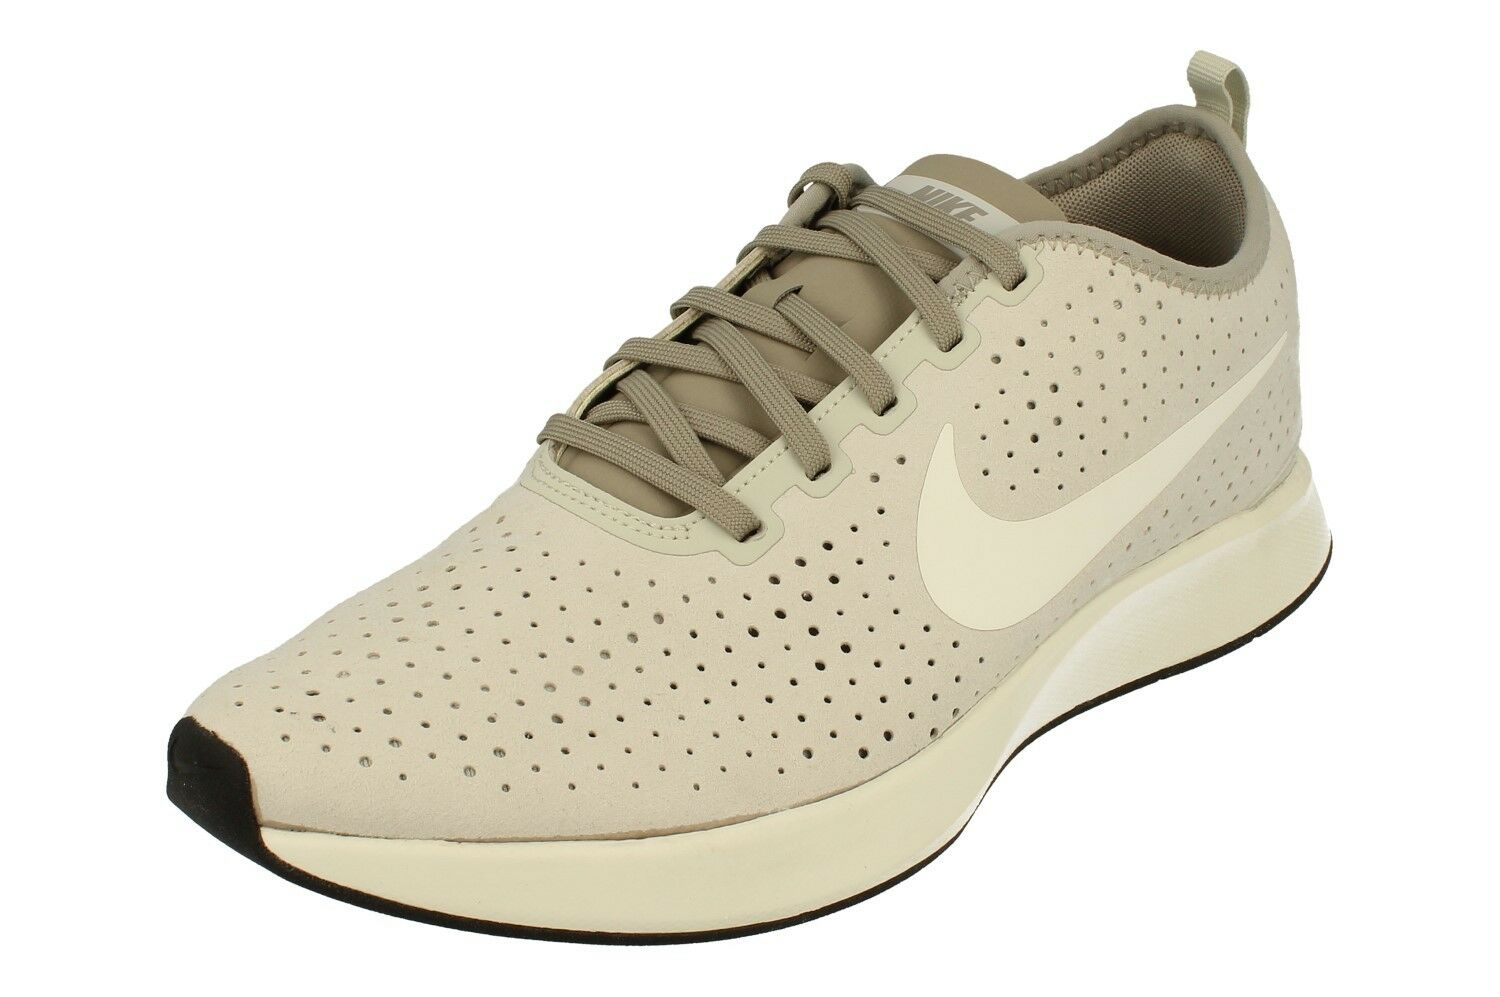 Nike Dualtone Racer PRM Mens Running Trainers 924448 Turnchaussures chaussures 005